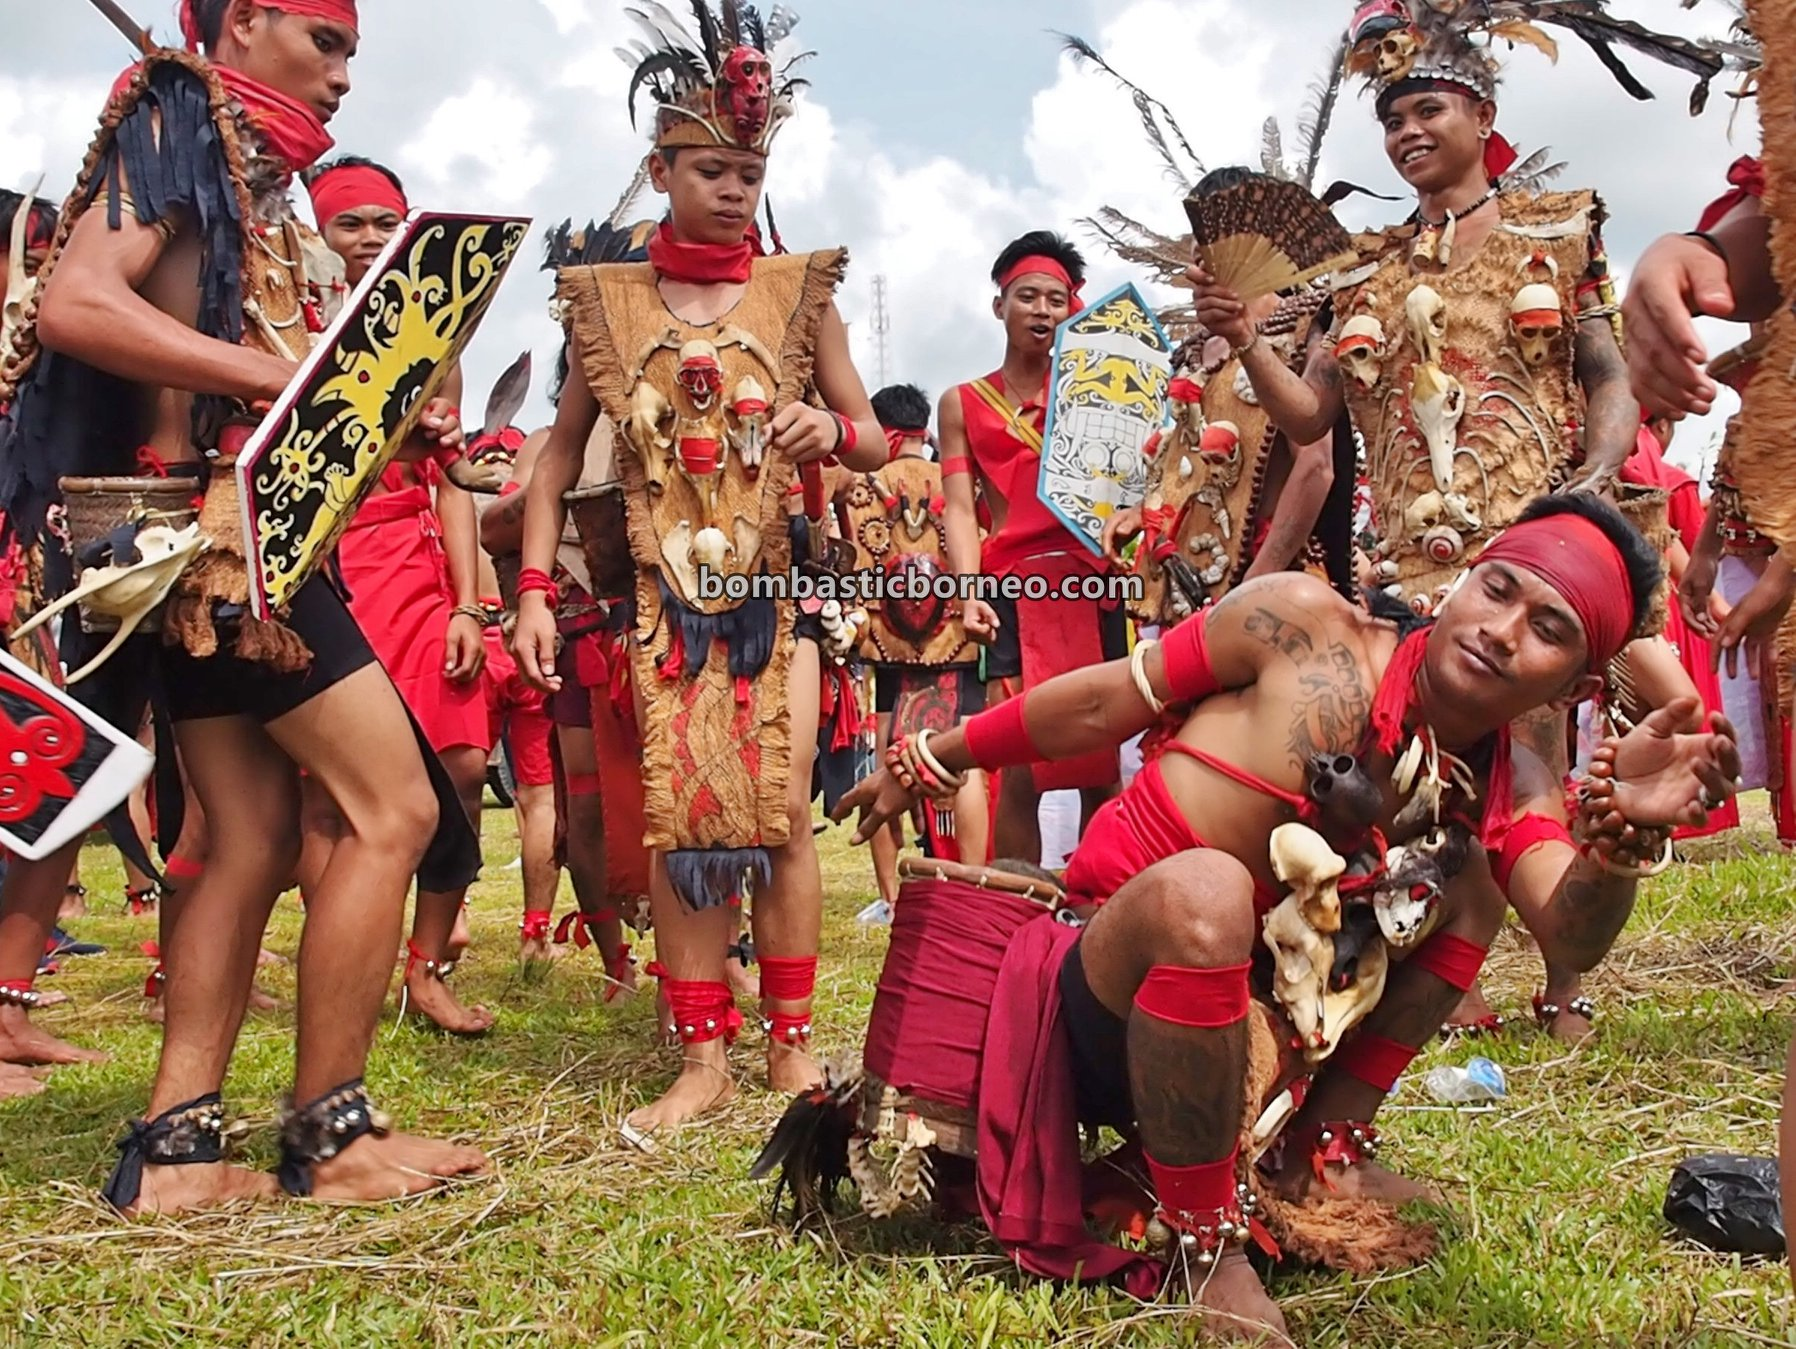 authentic, indigenous, traditional, culture, native, tribal, Indonesia, backpackers, destination, Tourism, tourist attraction, travel guide, 穿越婆罗洲印尼, 西加里曼丹原住民, 孟加映土著部落